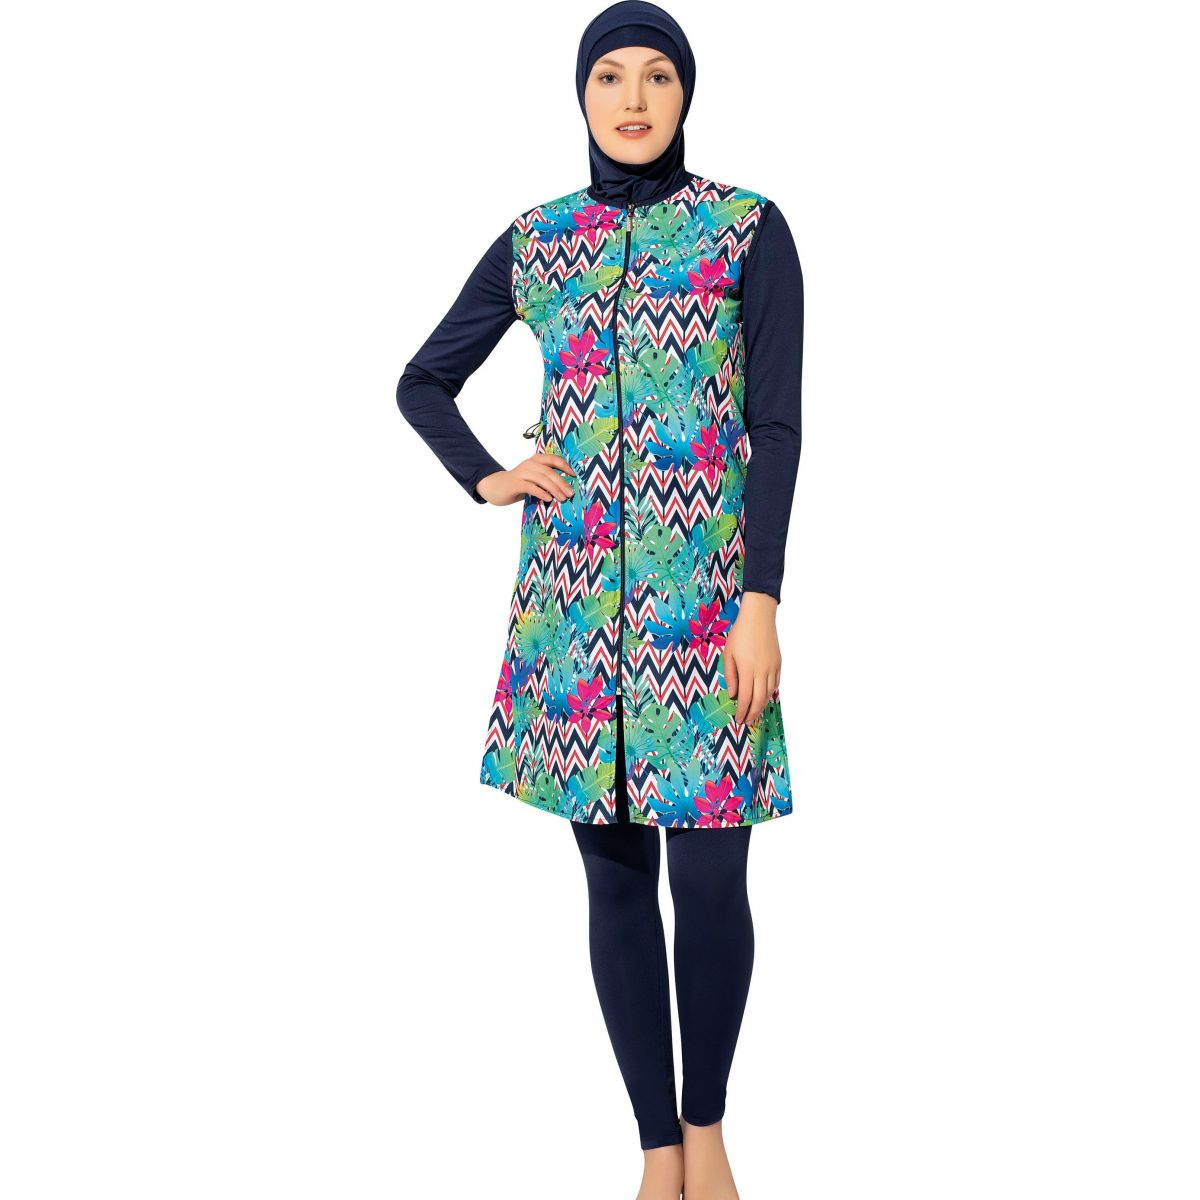 Argisa 7107 Long Micro Sleeves Board Patterned Full Hijab Swimwear S-XXL Muslim Hijab Islamic Swimsuit Burkini Turkey Full cover Swim